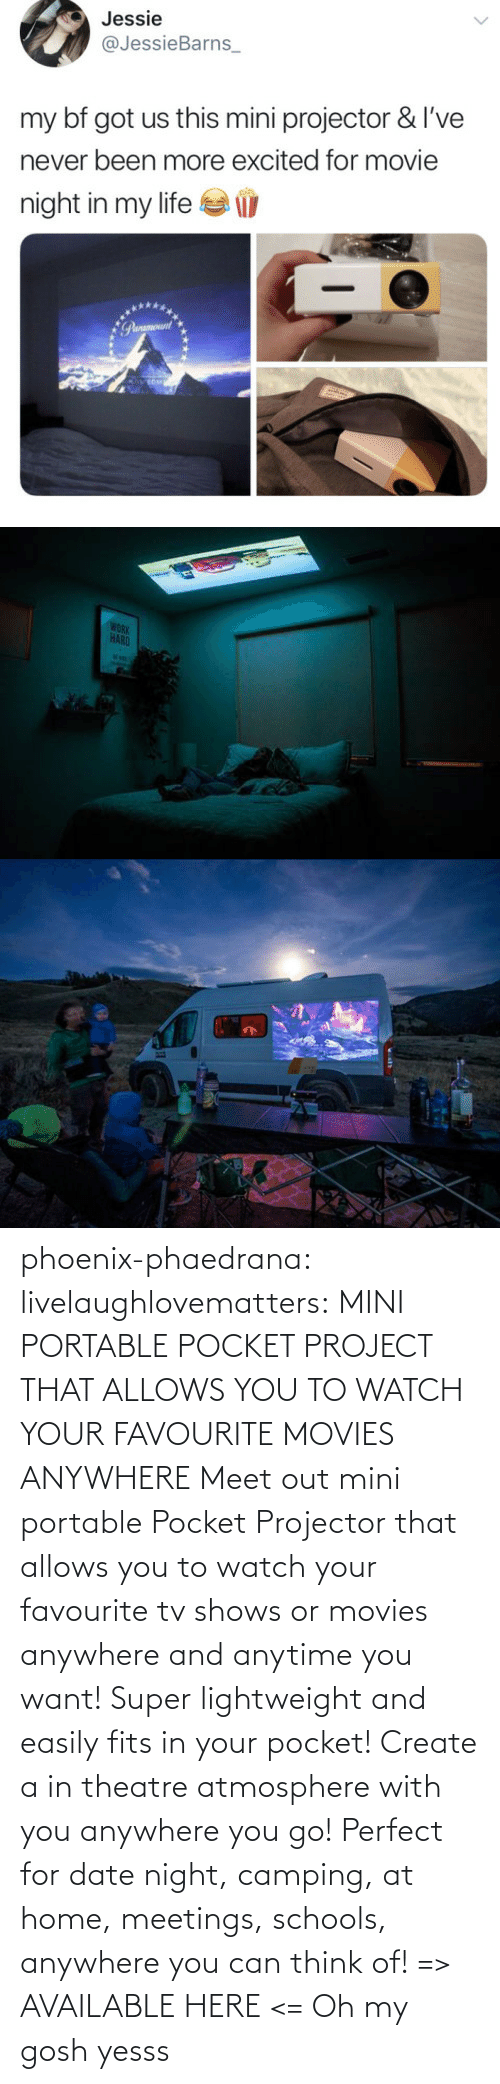 Lightweight: phoenix-phaedrana: livelaughlovematters:  MINI PORTABLE POCKET PROJECT THAT ALLOWS YOU TO WATCH YOUR FAVOURITE MOVIES ANYWHERE Meet out mini portable Pocket Projector that allows you to watch your favourite tv shows or movies anywhere and anytime you want! Super lightweight and easily fits in your pocket! Create a in theatre atmosphere with you anywhere you go! Perfect for date night, camping, at home, meetings, schools, anywhere you can think of! => AVAILABLE HERE <=  Oh my gosh yesss